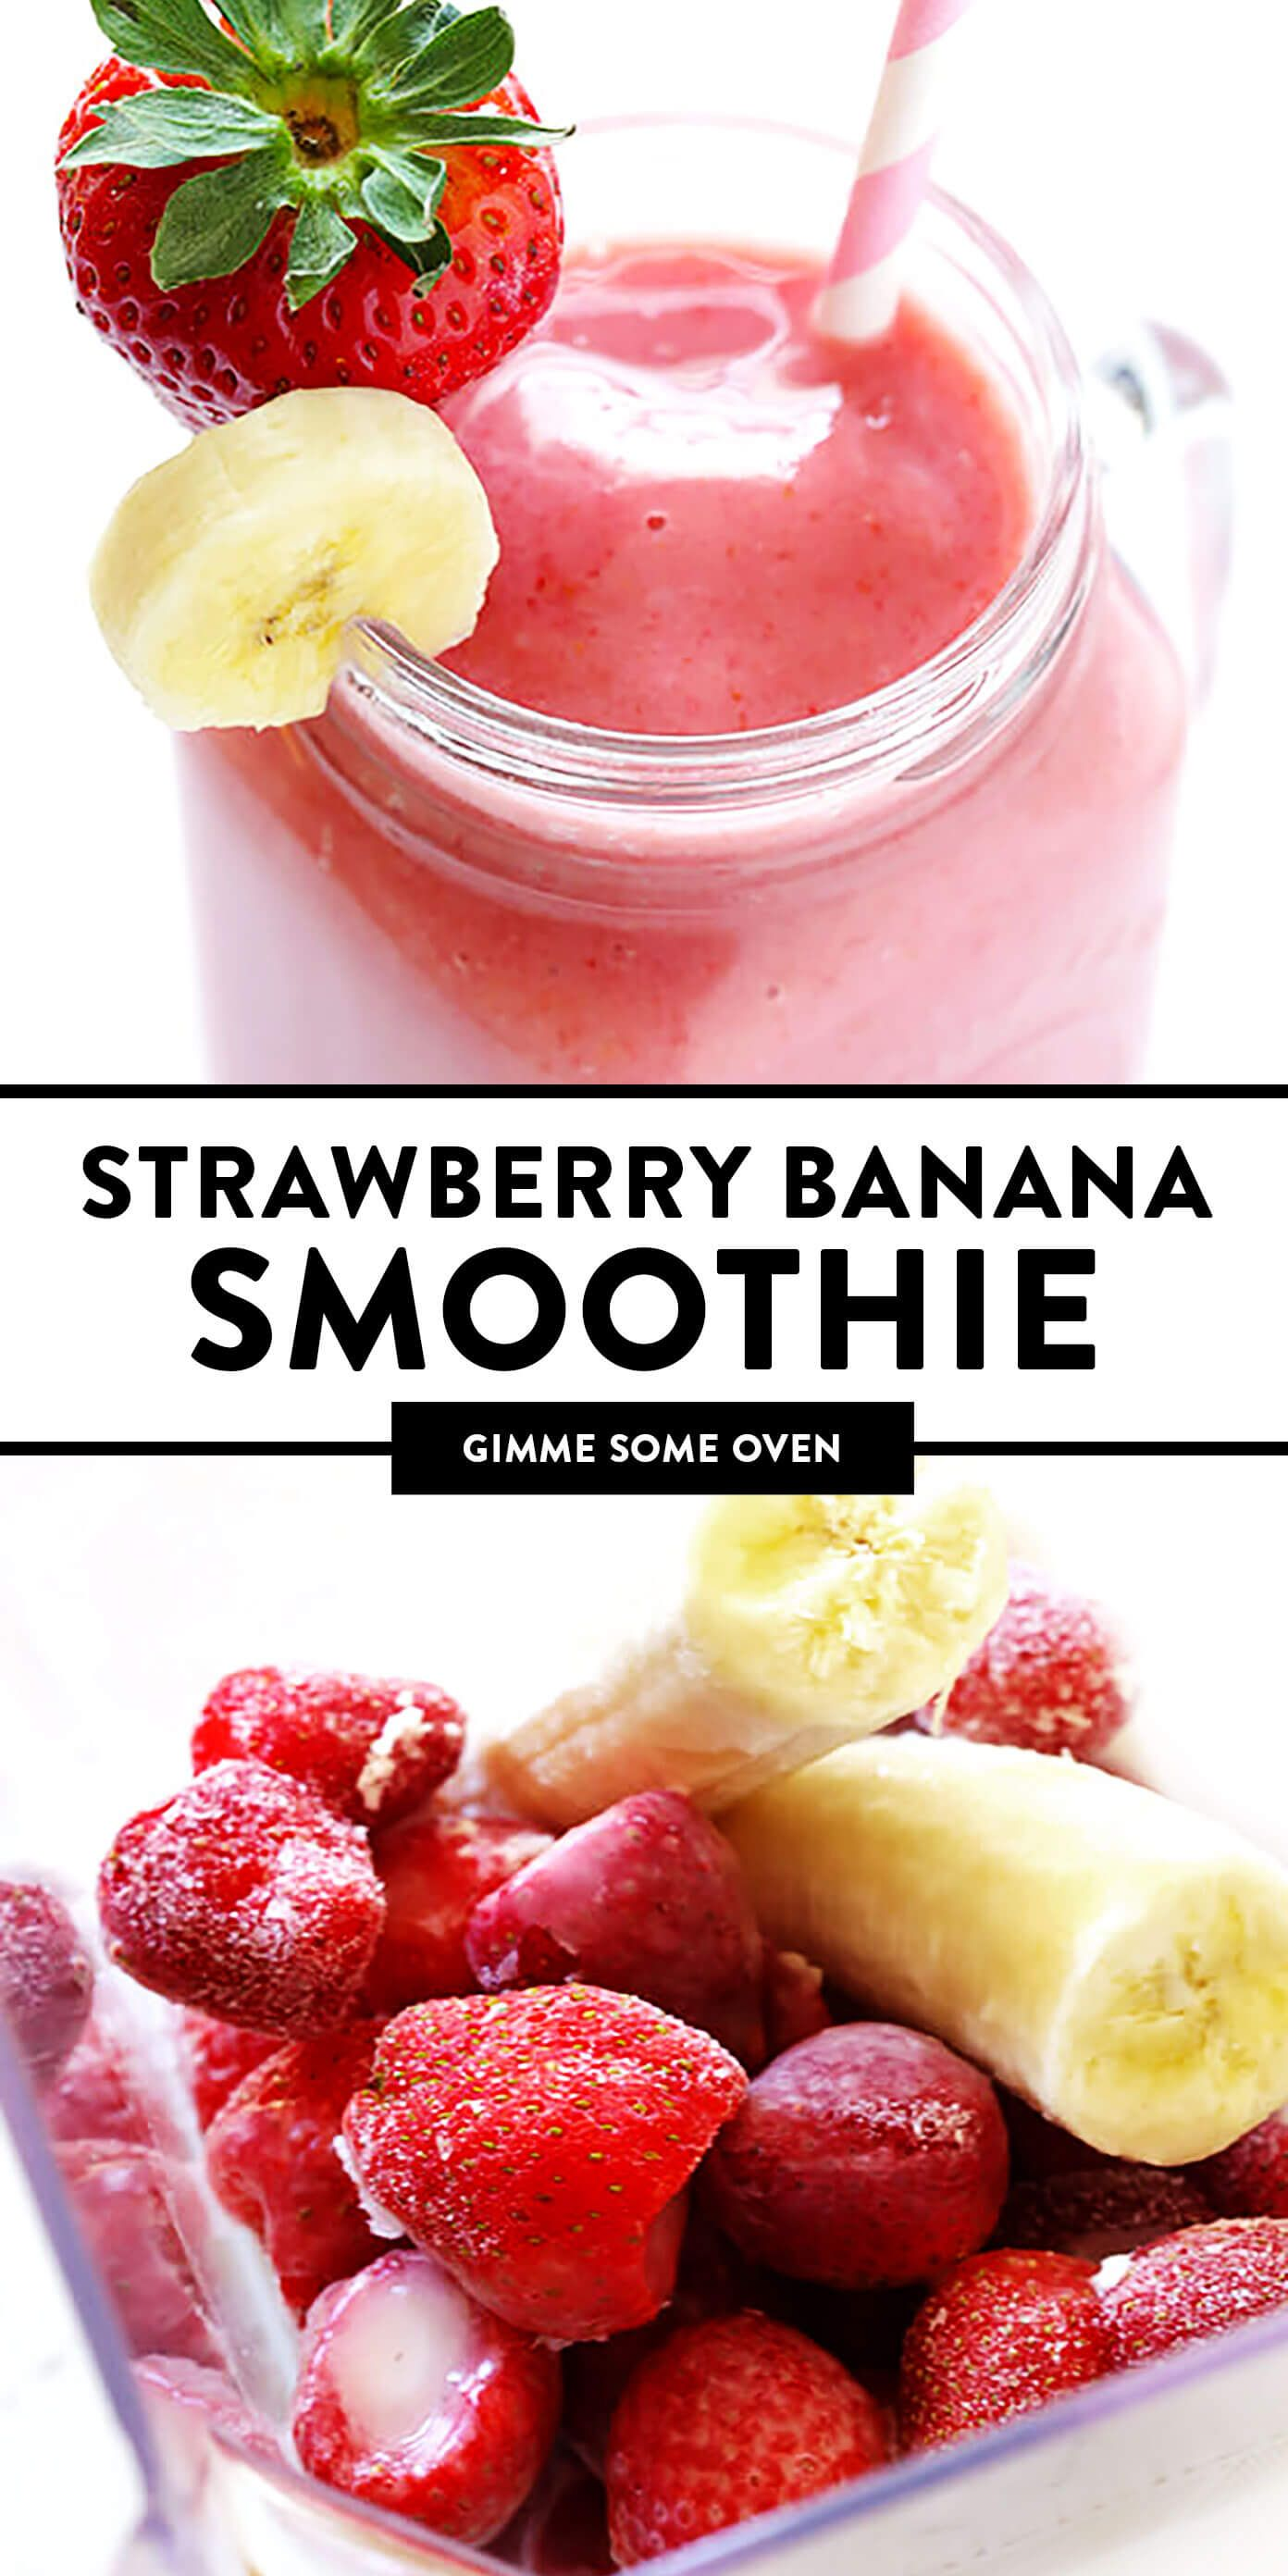 Strawberry Banana Smoothie Recipe | Gimme Some Oven